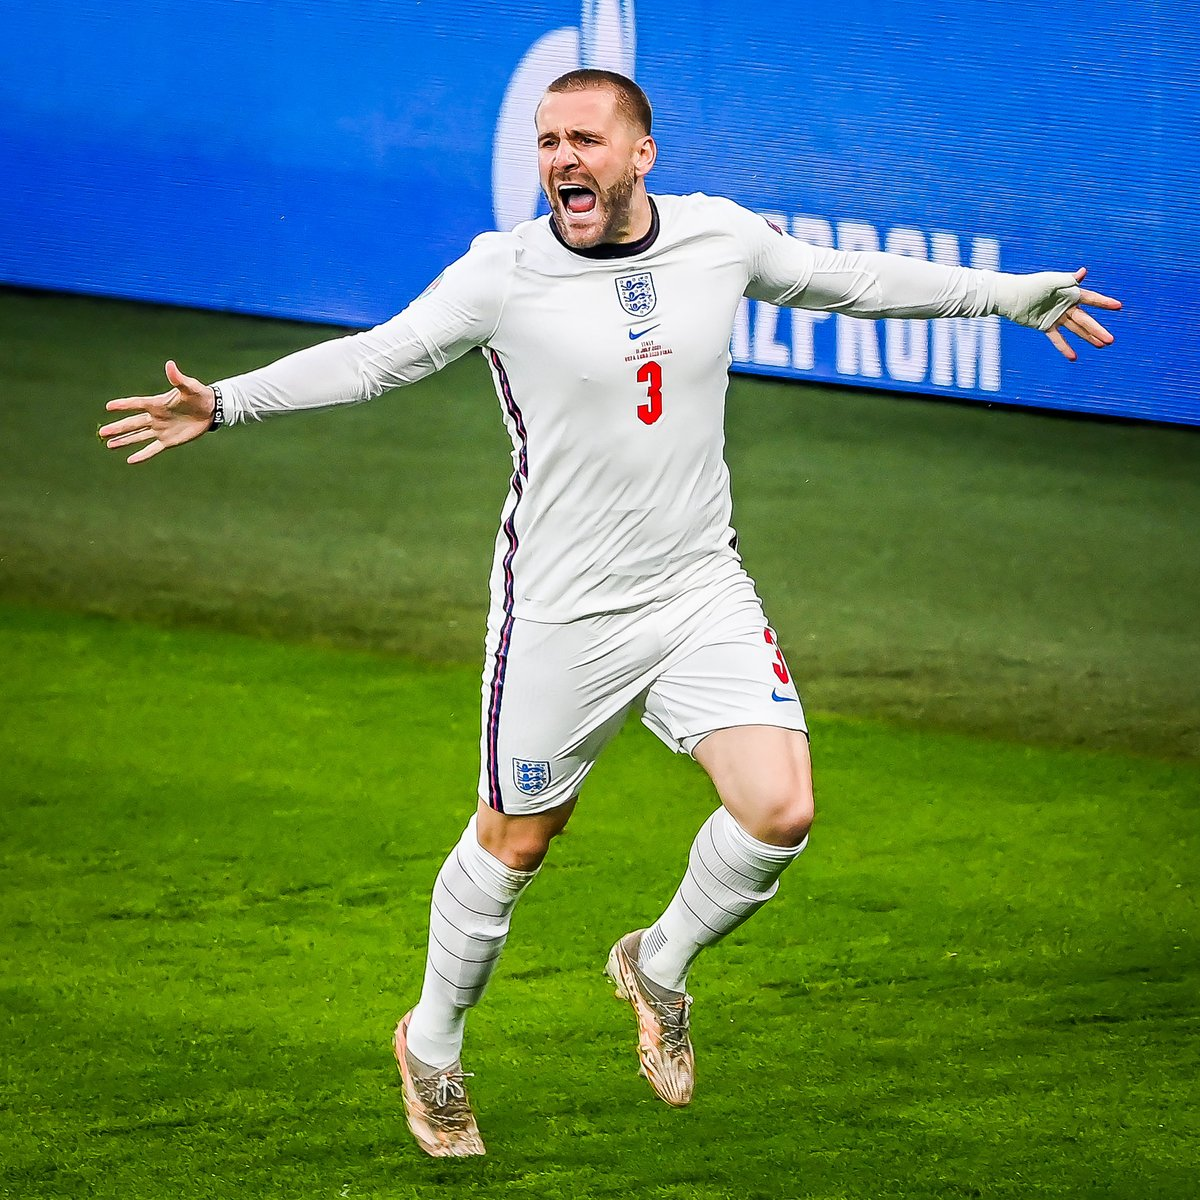 Luke Shaw played against Germany, Ukraine, Denmark and Italy with broken ribs.   And he still finished Euro 2020 with three assists and a goal in the final. https://t.co/I9Ugt5LDze